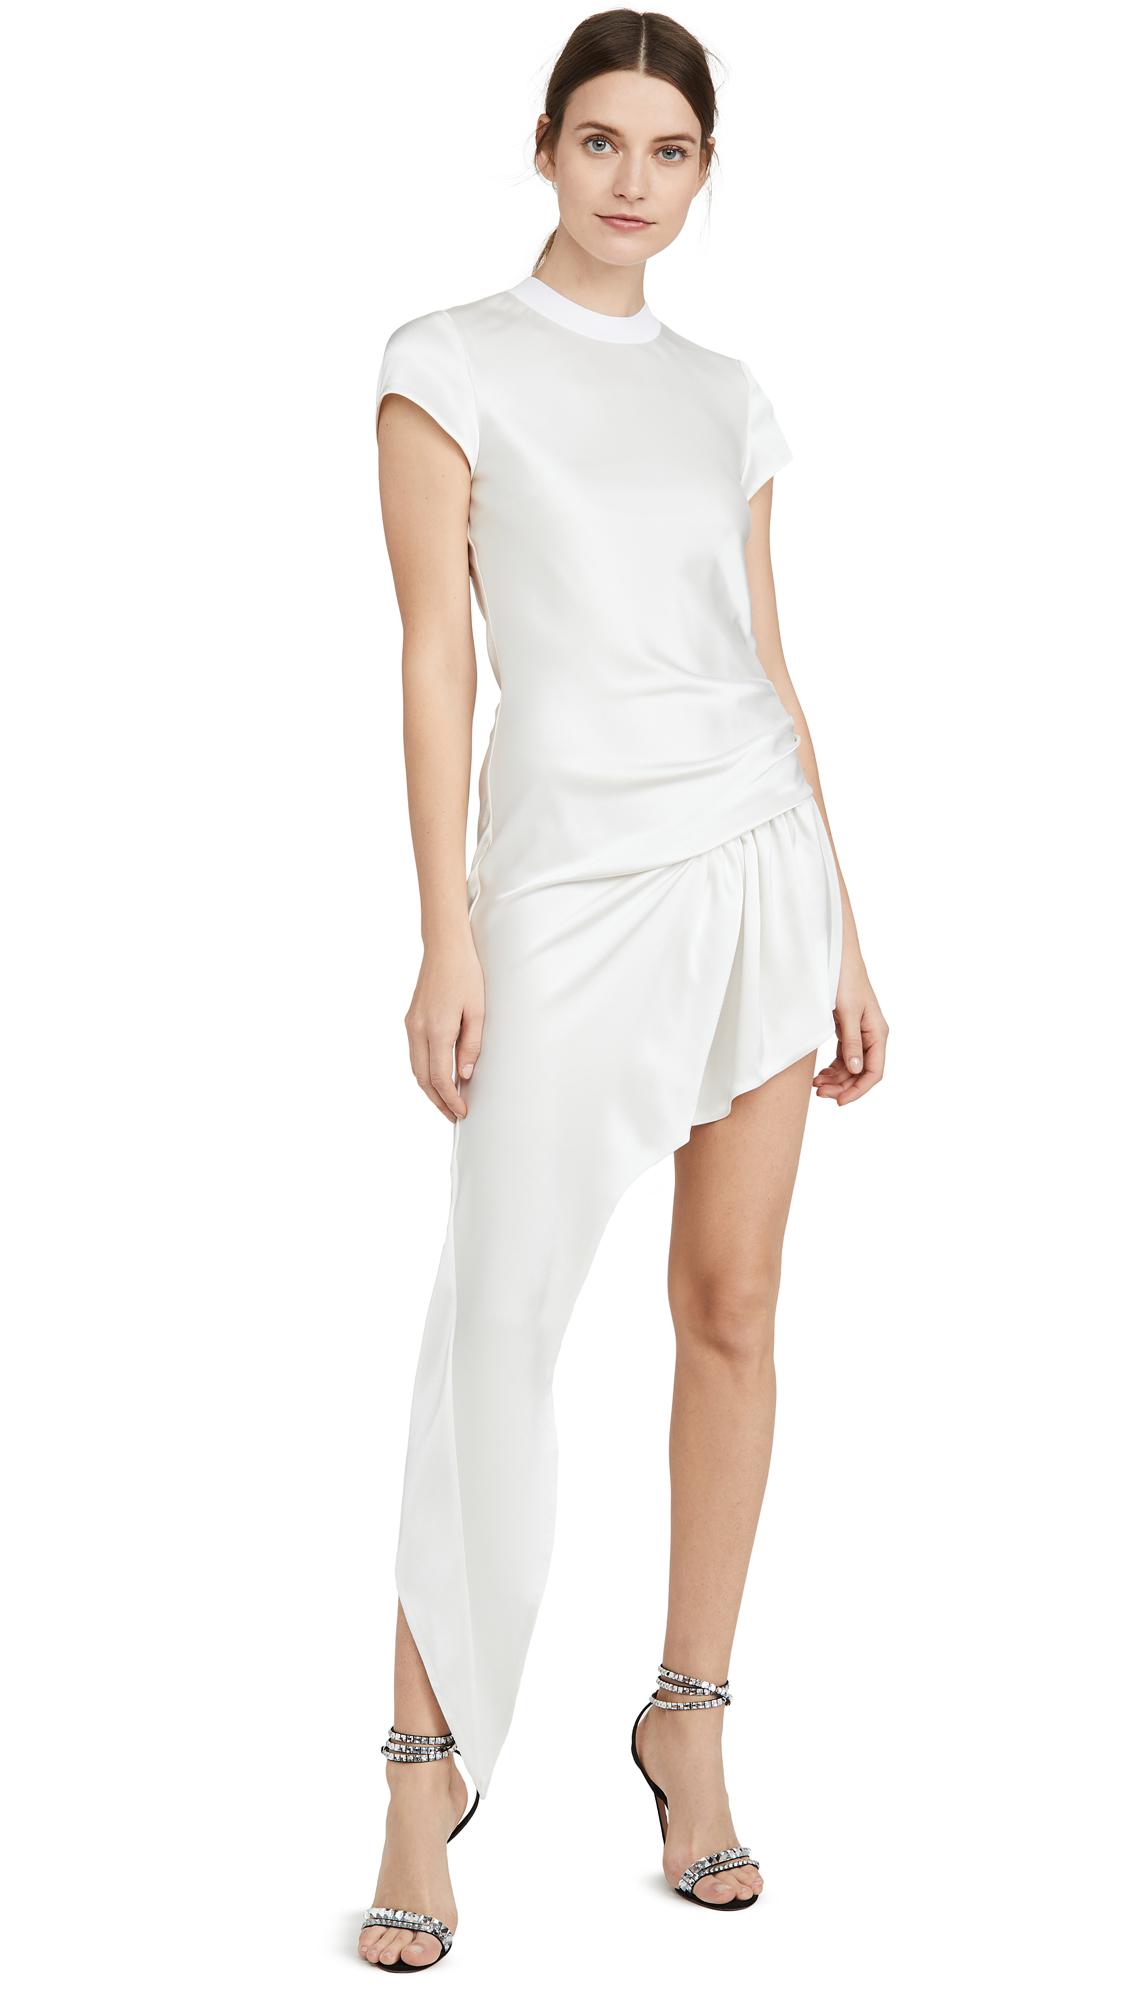 Photo of Alexander Wang Exposed Leg Short Sleeve Dress - shop Alexander Wang Dresses, Strapless online